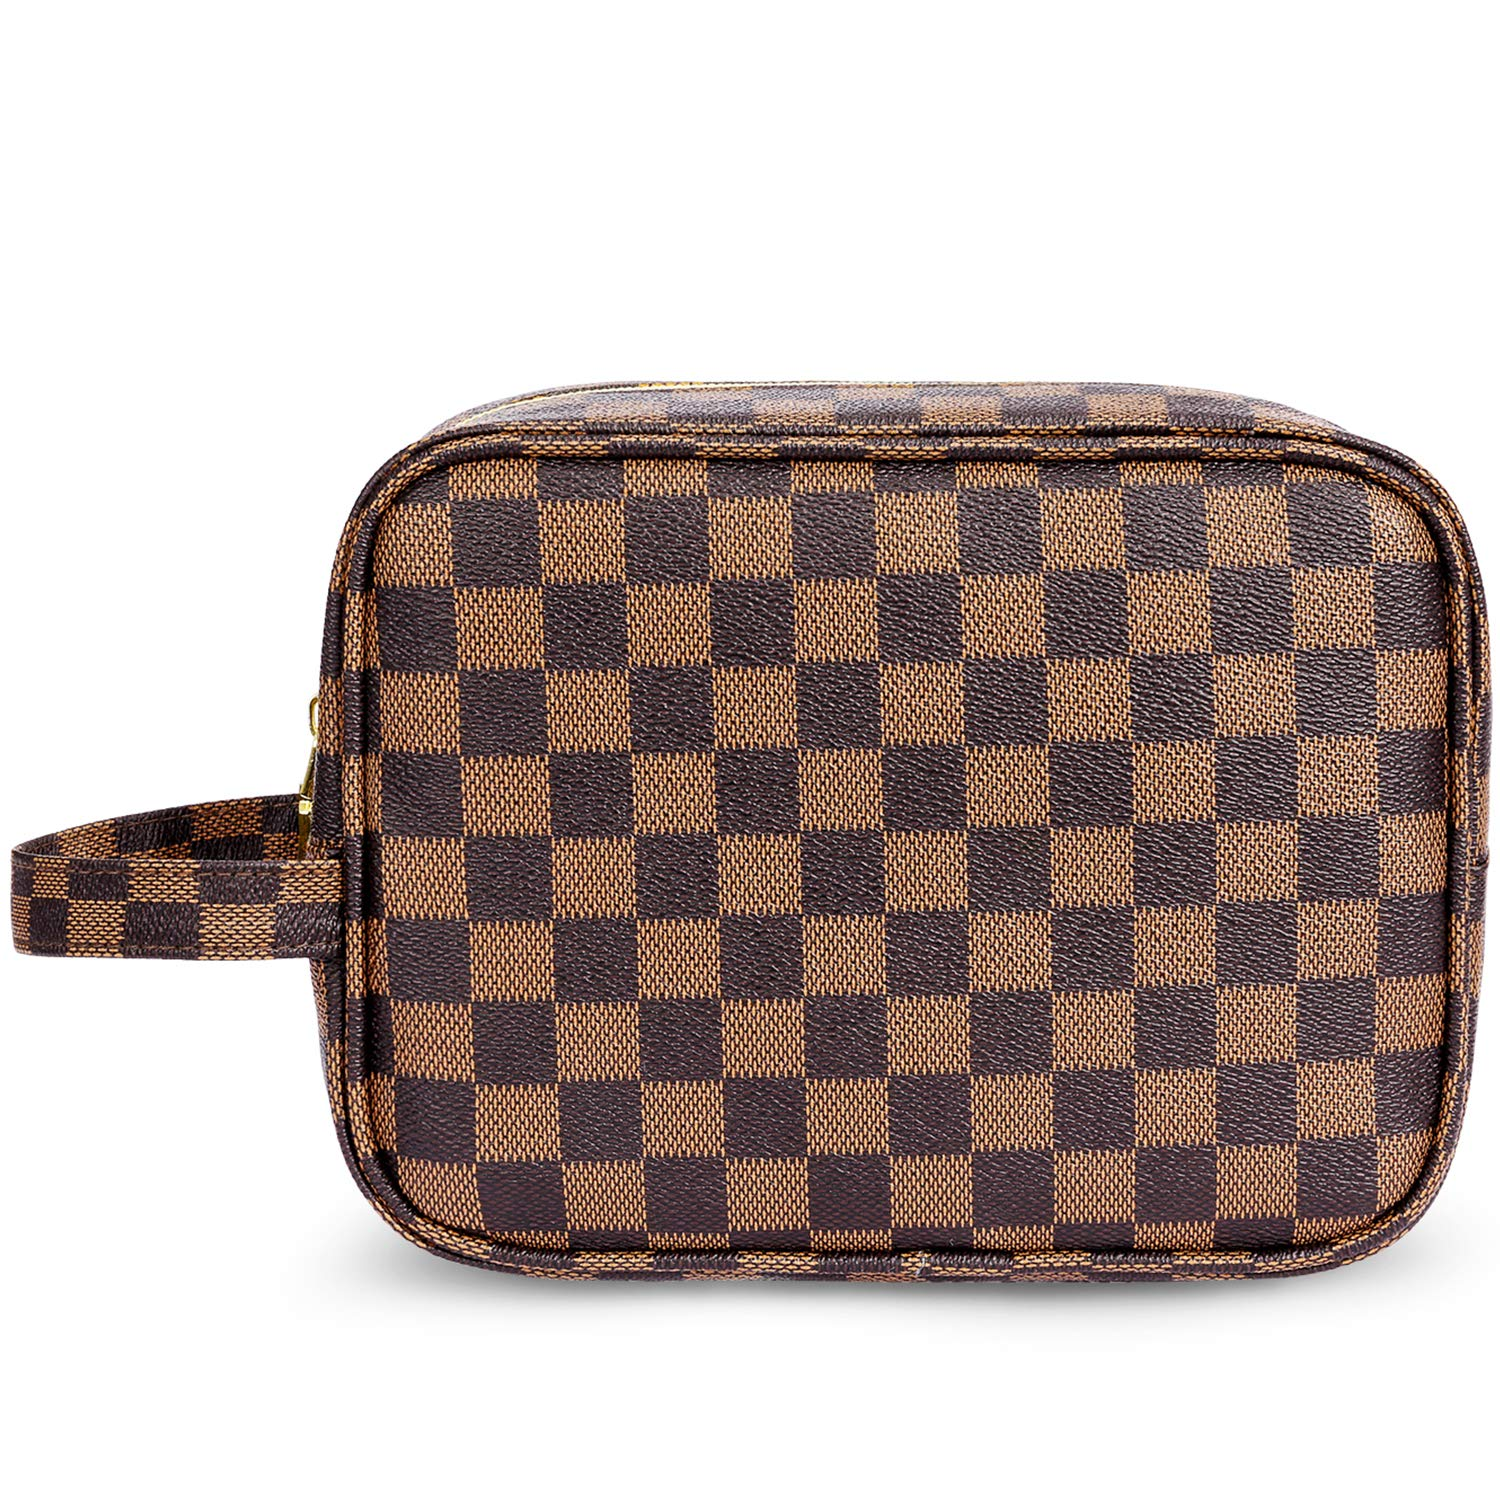 ADCOOG Makeup Bag Portable Cosmetic Bags Retro Cosmetic Pouch Toiletry Travel Organizer for Women, Cosmetics, Make Up Tools, Toiletries,Brown